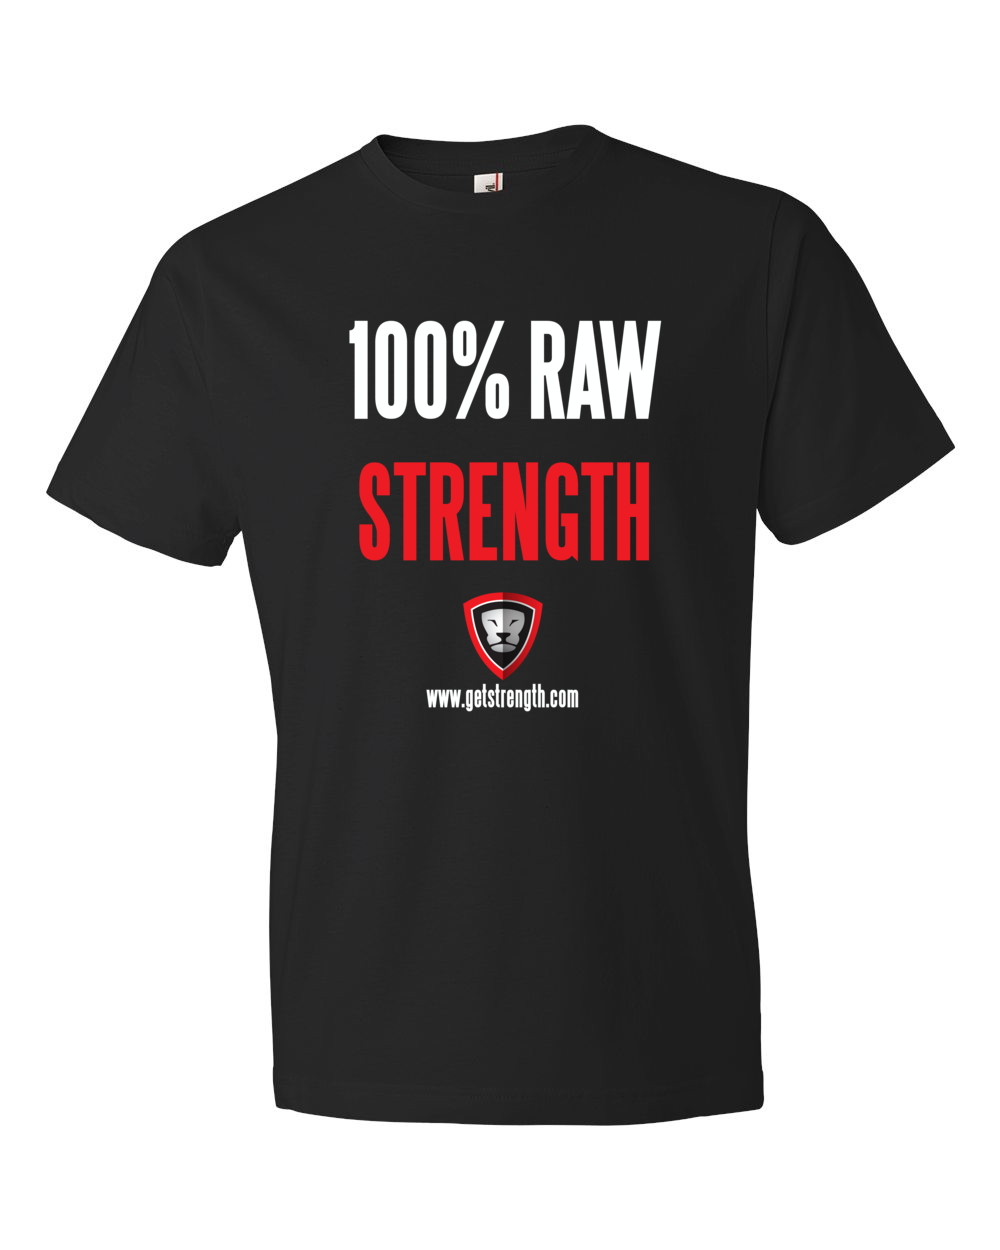 Getstrength Lightweight Short Sleeve T-Shirt 100% Raw Strength